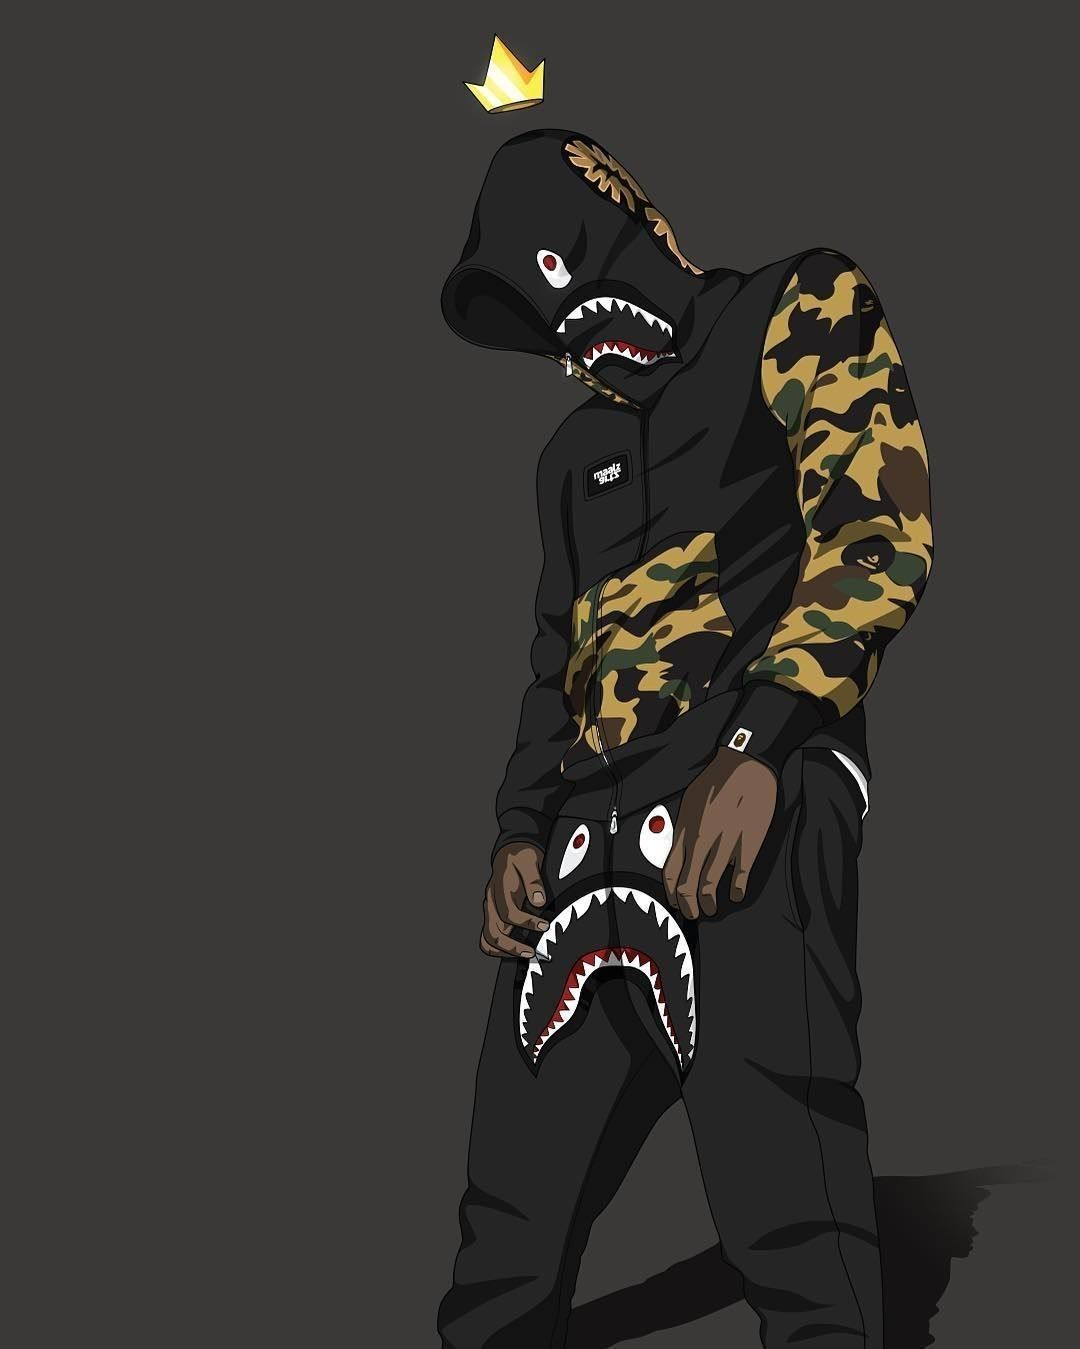 "1080x1349 Supreme Gangster Wallpaper Inspirational Hypebeast Jllsly Bape ...""> Download · 736x1306 Supreme Gangster Wallpaper ..."